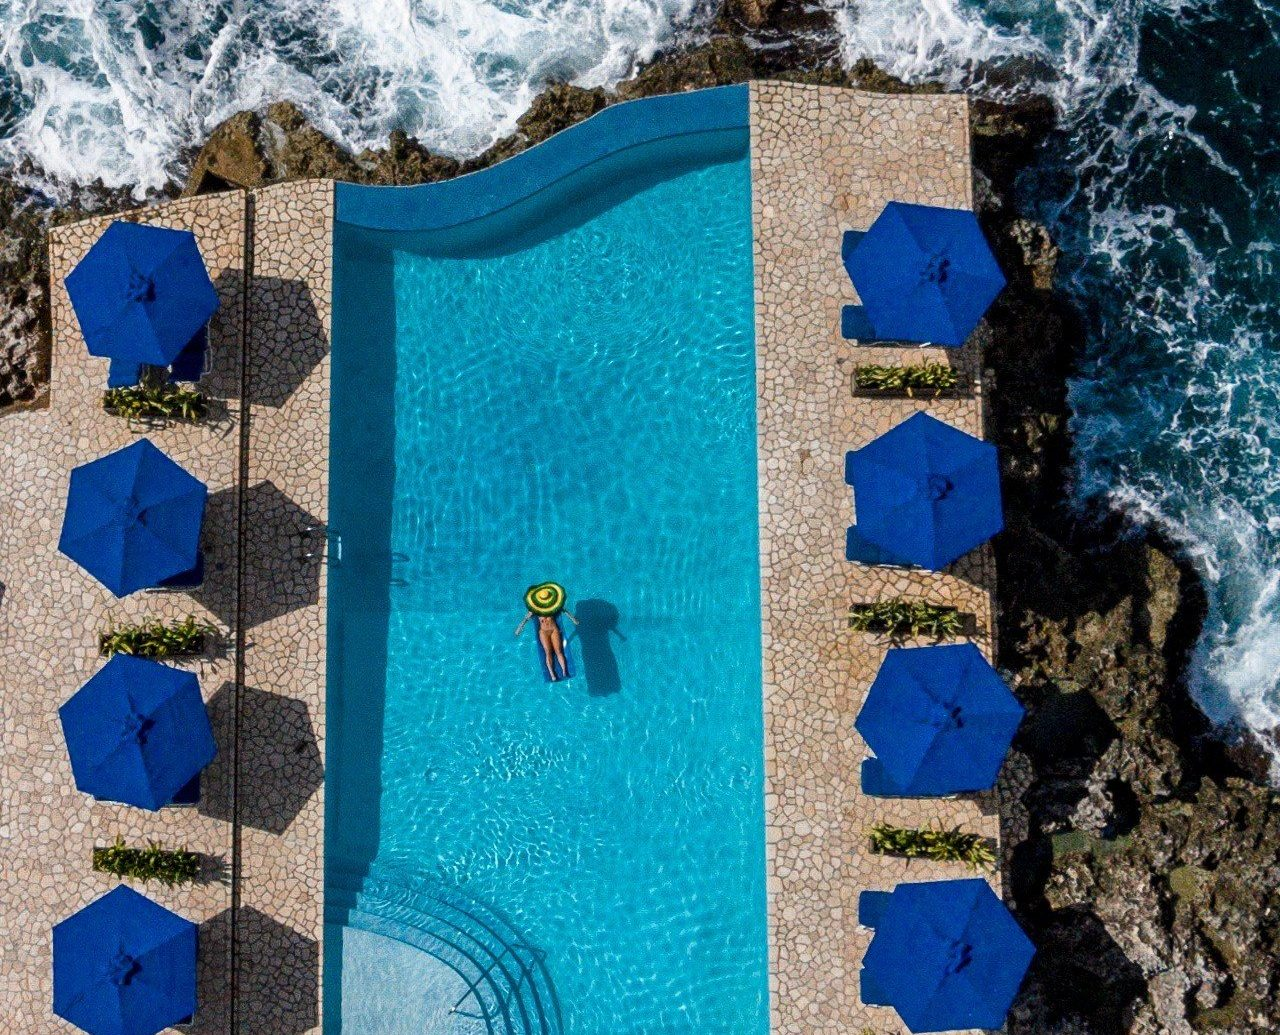 Aerial view of the pool at Rockhouse Hotel